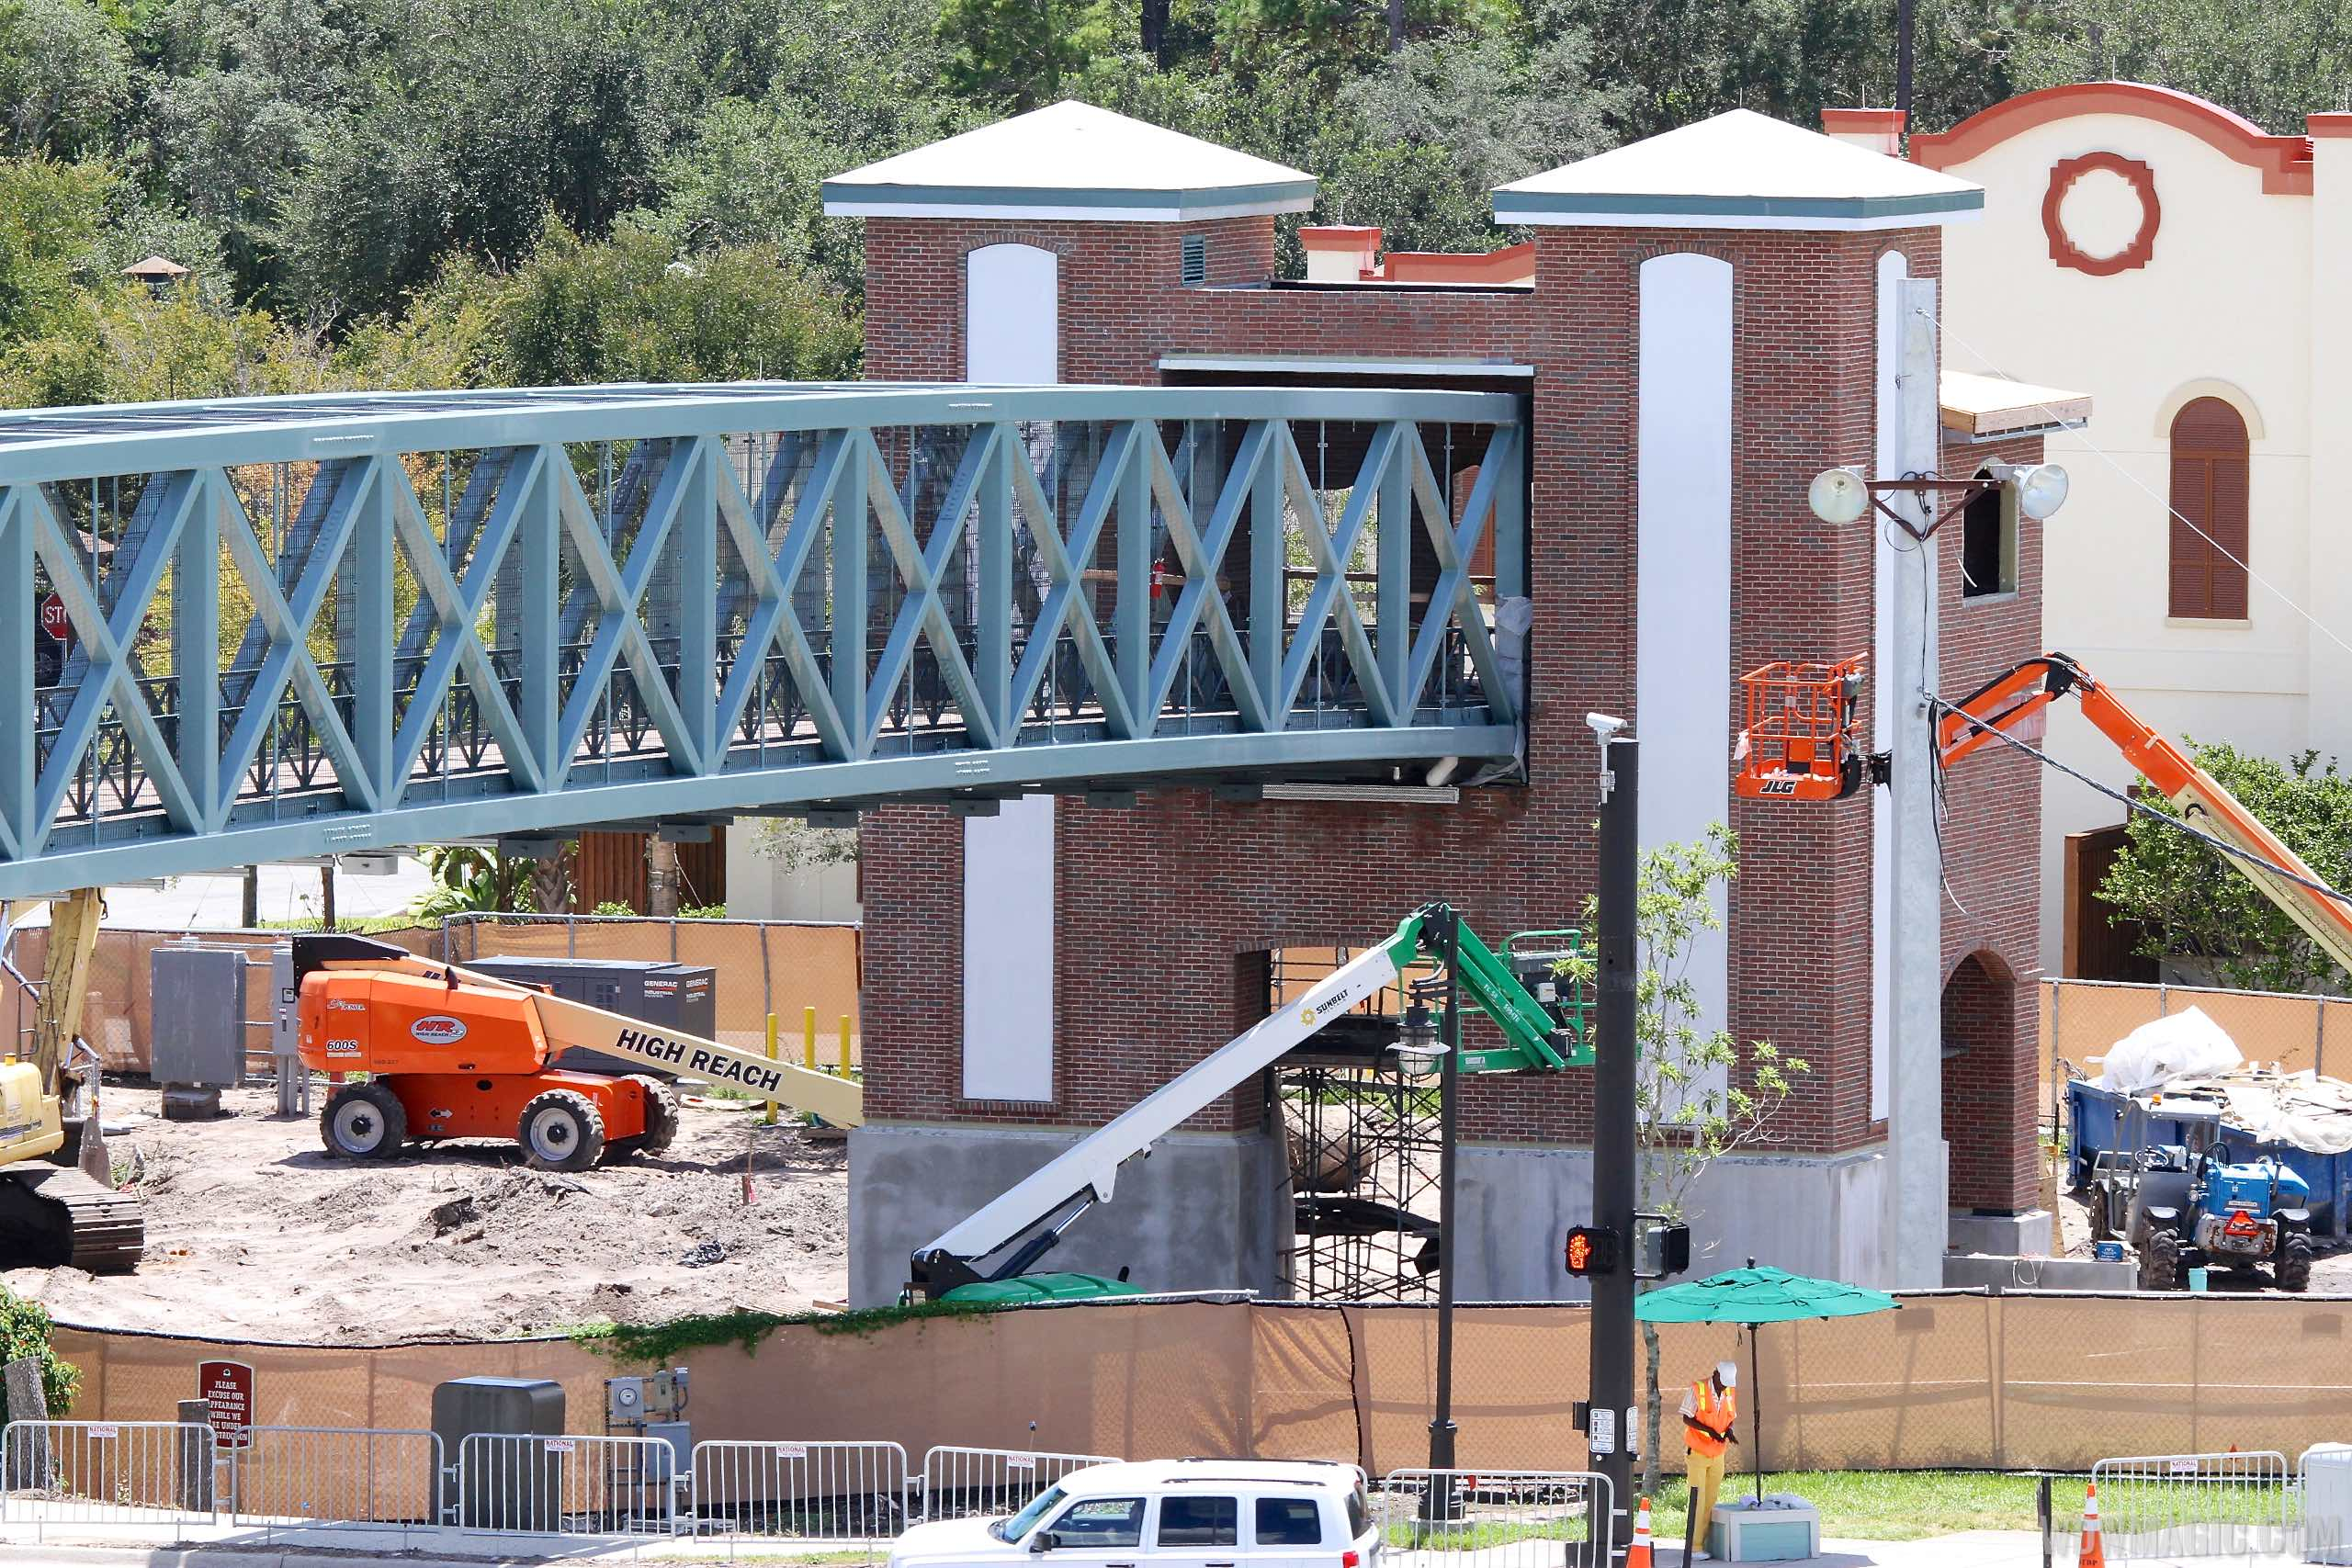 Buena Vista Drive pedestrian bridge construction close-up